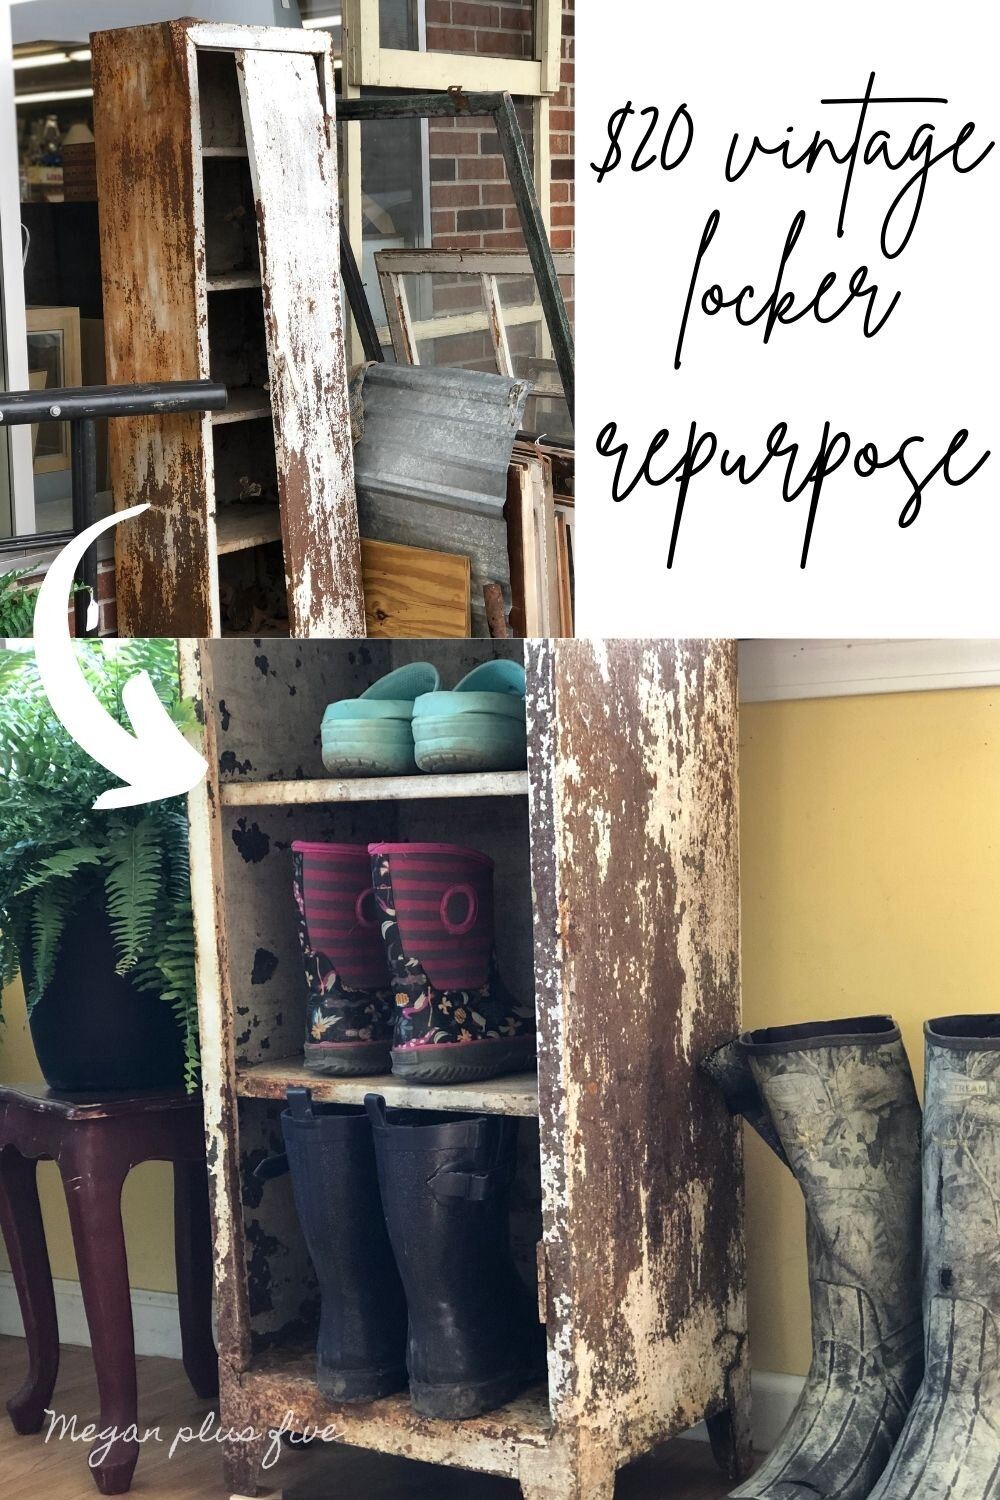 Rusty locker / metal cabinet repurposed for a mudroom sunporch. Turn an antique chipped paint locker into a shoe holder for your mudroom. Frugal rustic farmhouse furniture for your storage needs.